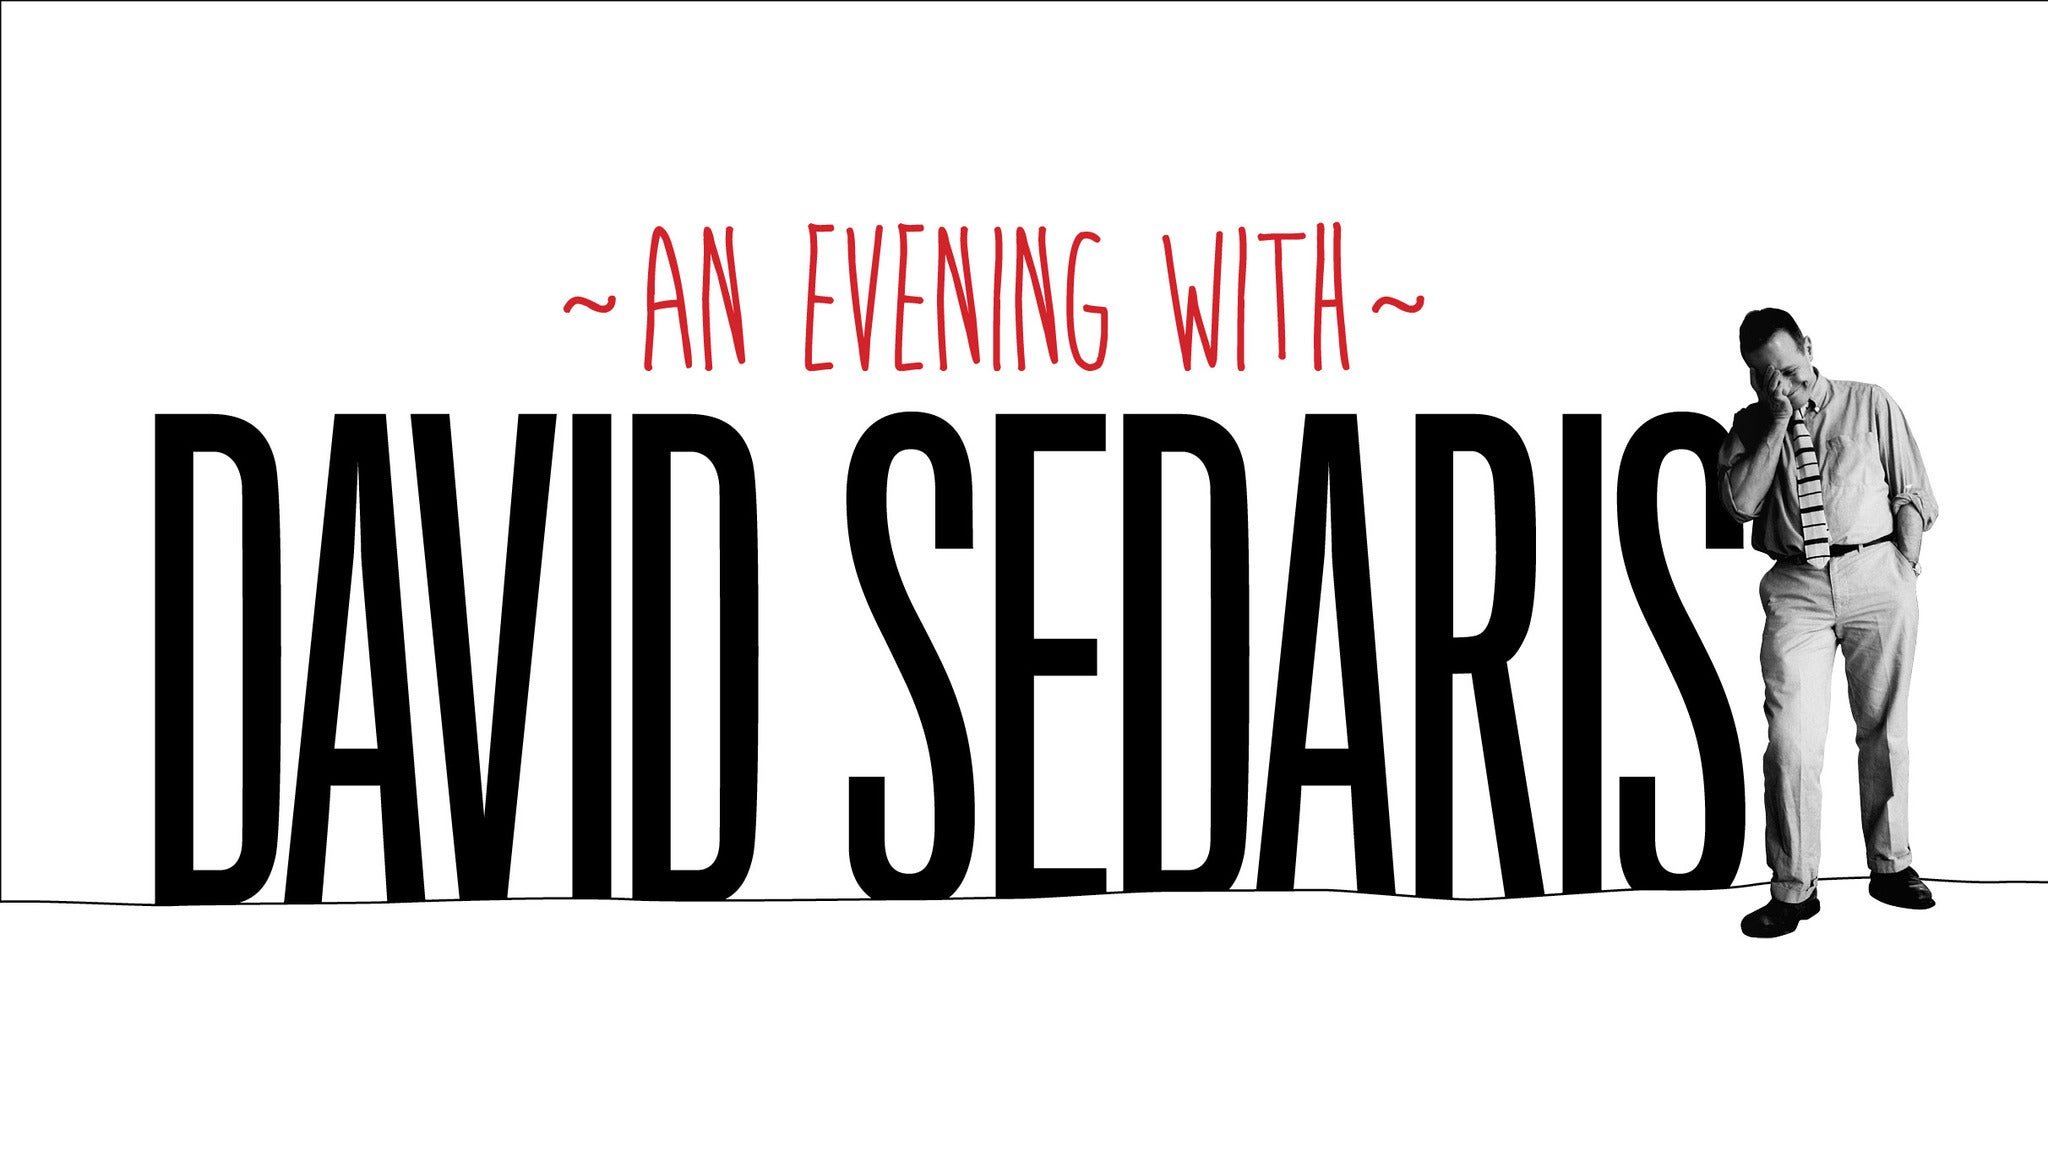 David Sedaris at Indiana University Auditorium